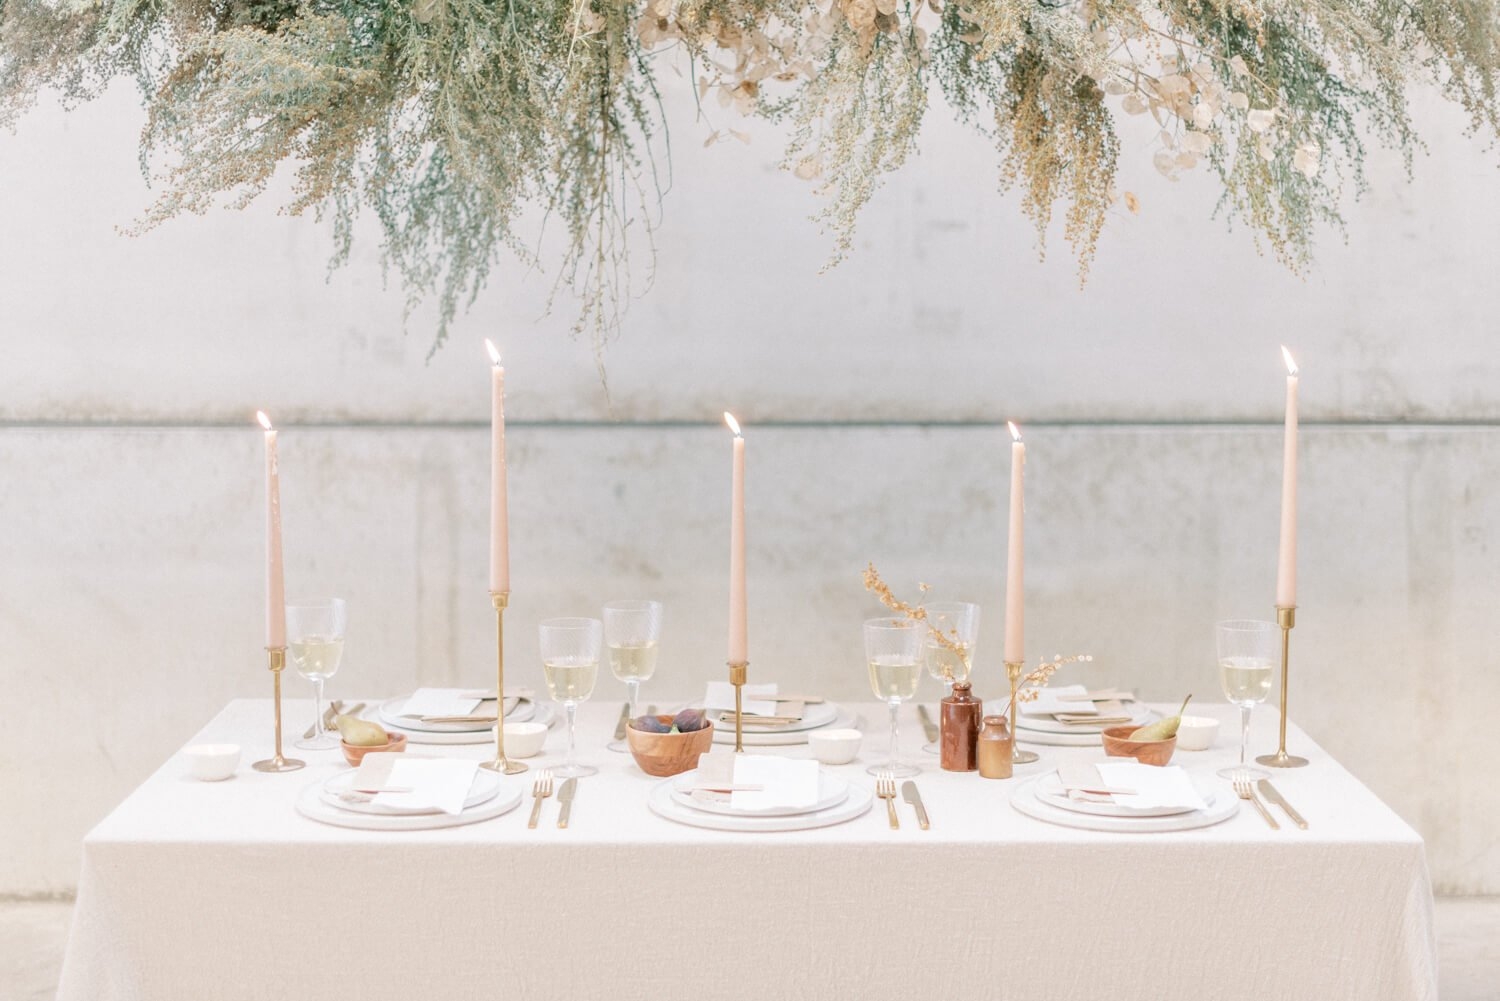 English Countryside Autumn Wedding at a Flower Farm | Photos and Text by Cristina Ilao Photography | In photo: minimalist destination wedding table arrangement with brass candlesticks and neutral colour themed crockery